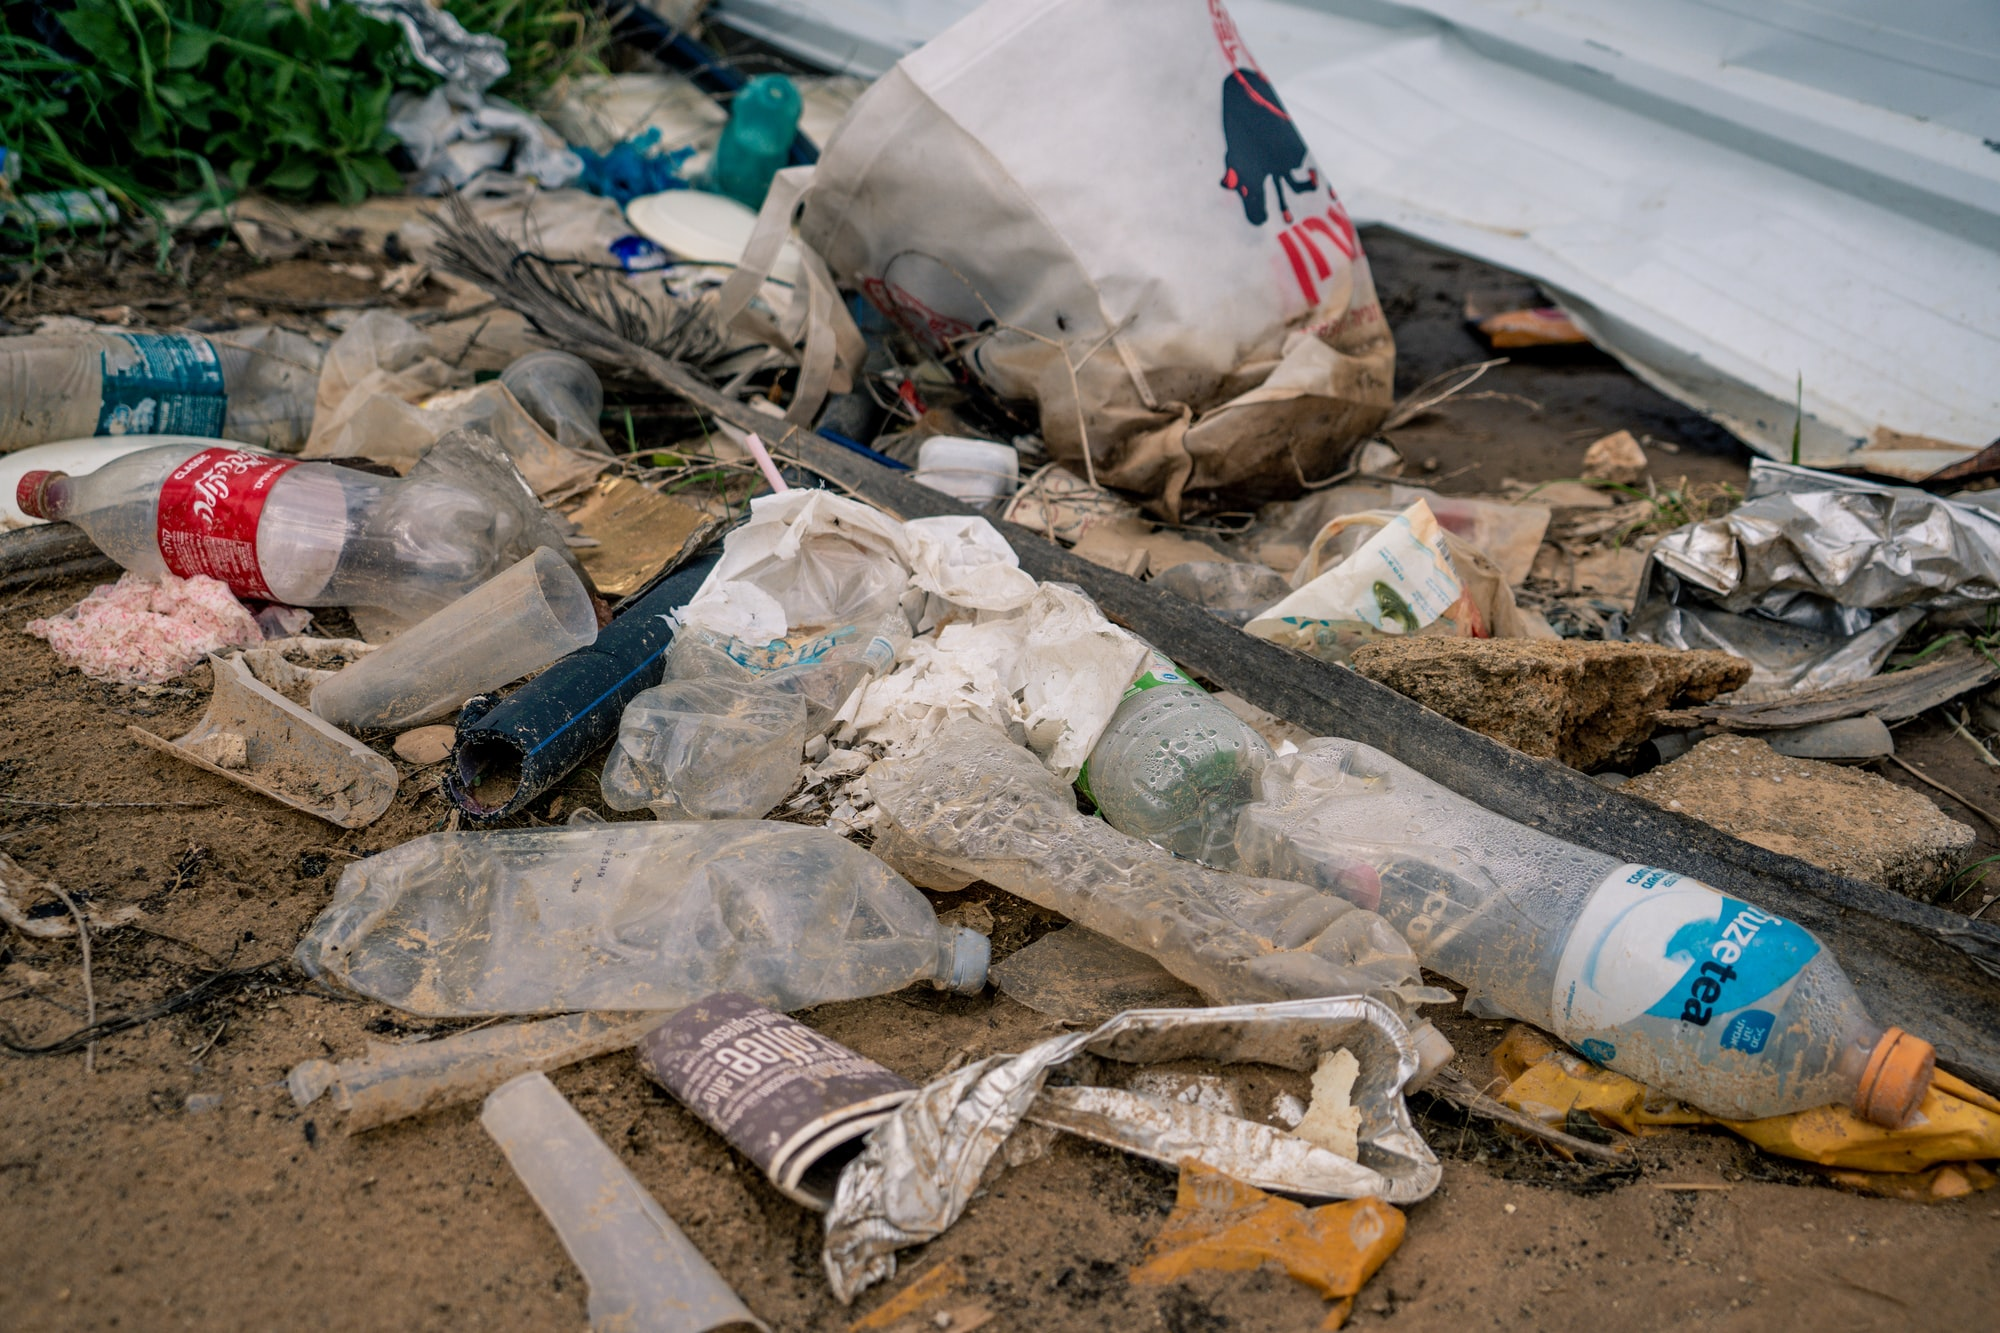 dump of dirty garbage near the road: empty plastic bottles, disposable cups, bags